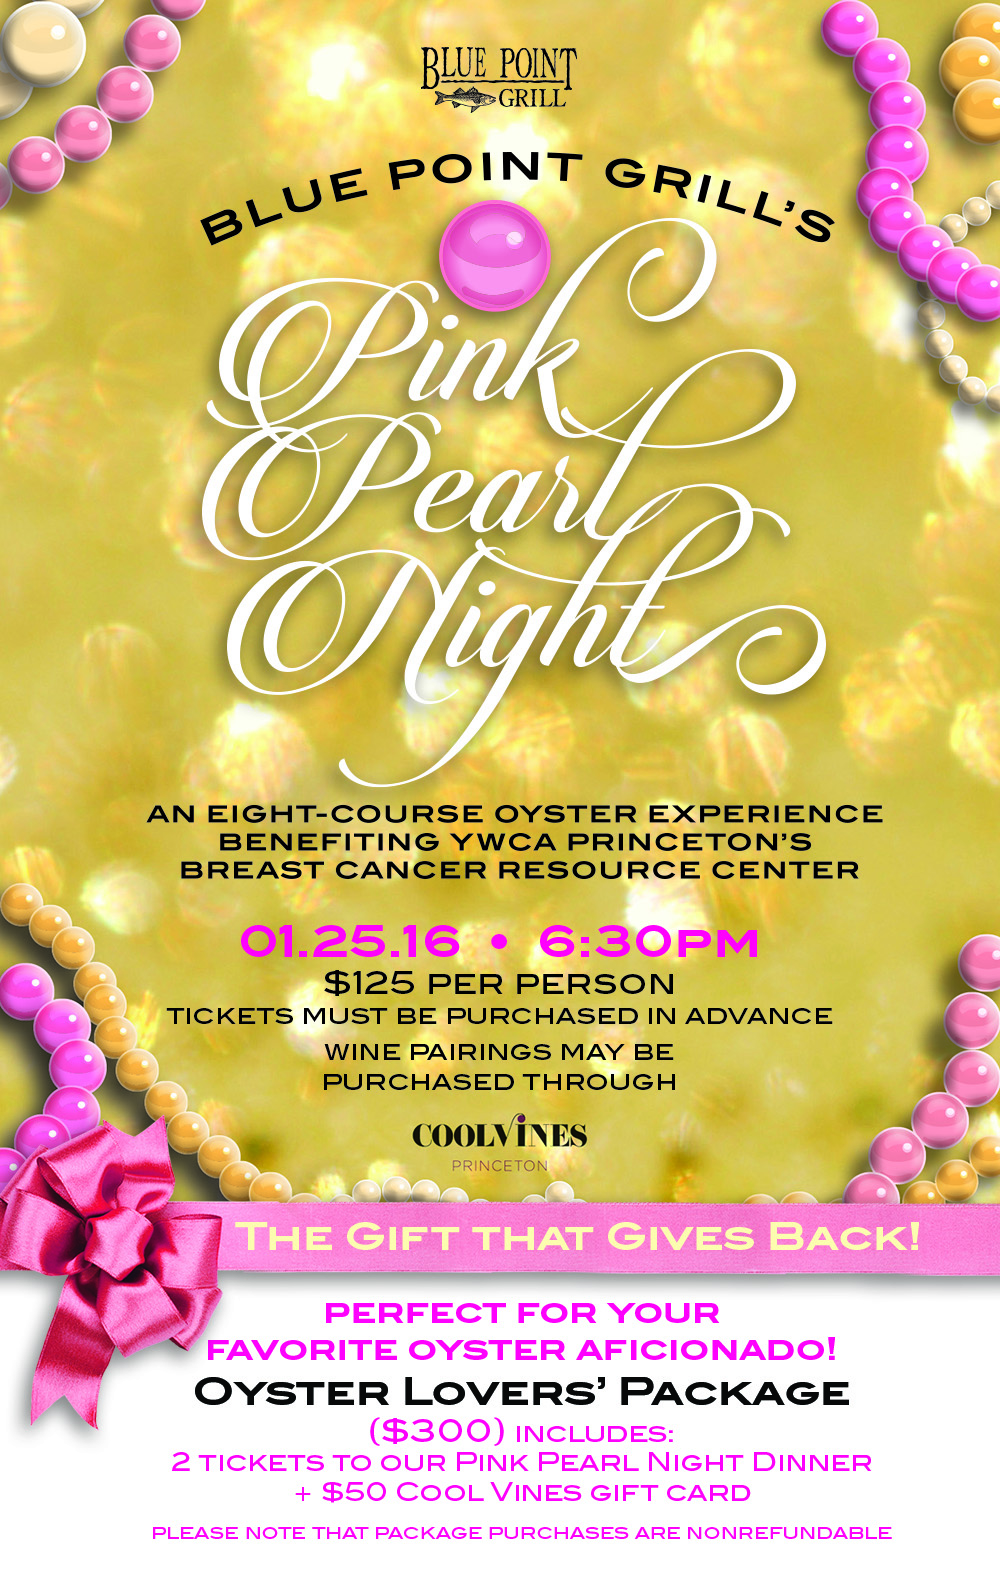 Pink Pearl Night ~ Save The Date ~ Jan. 25th 2016 Blue Point Grill